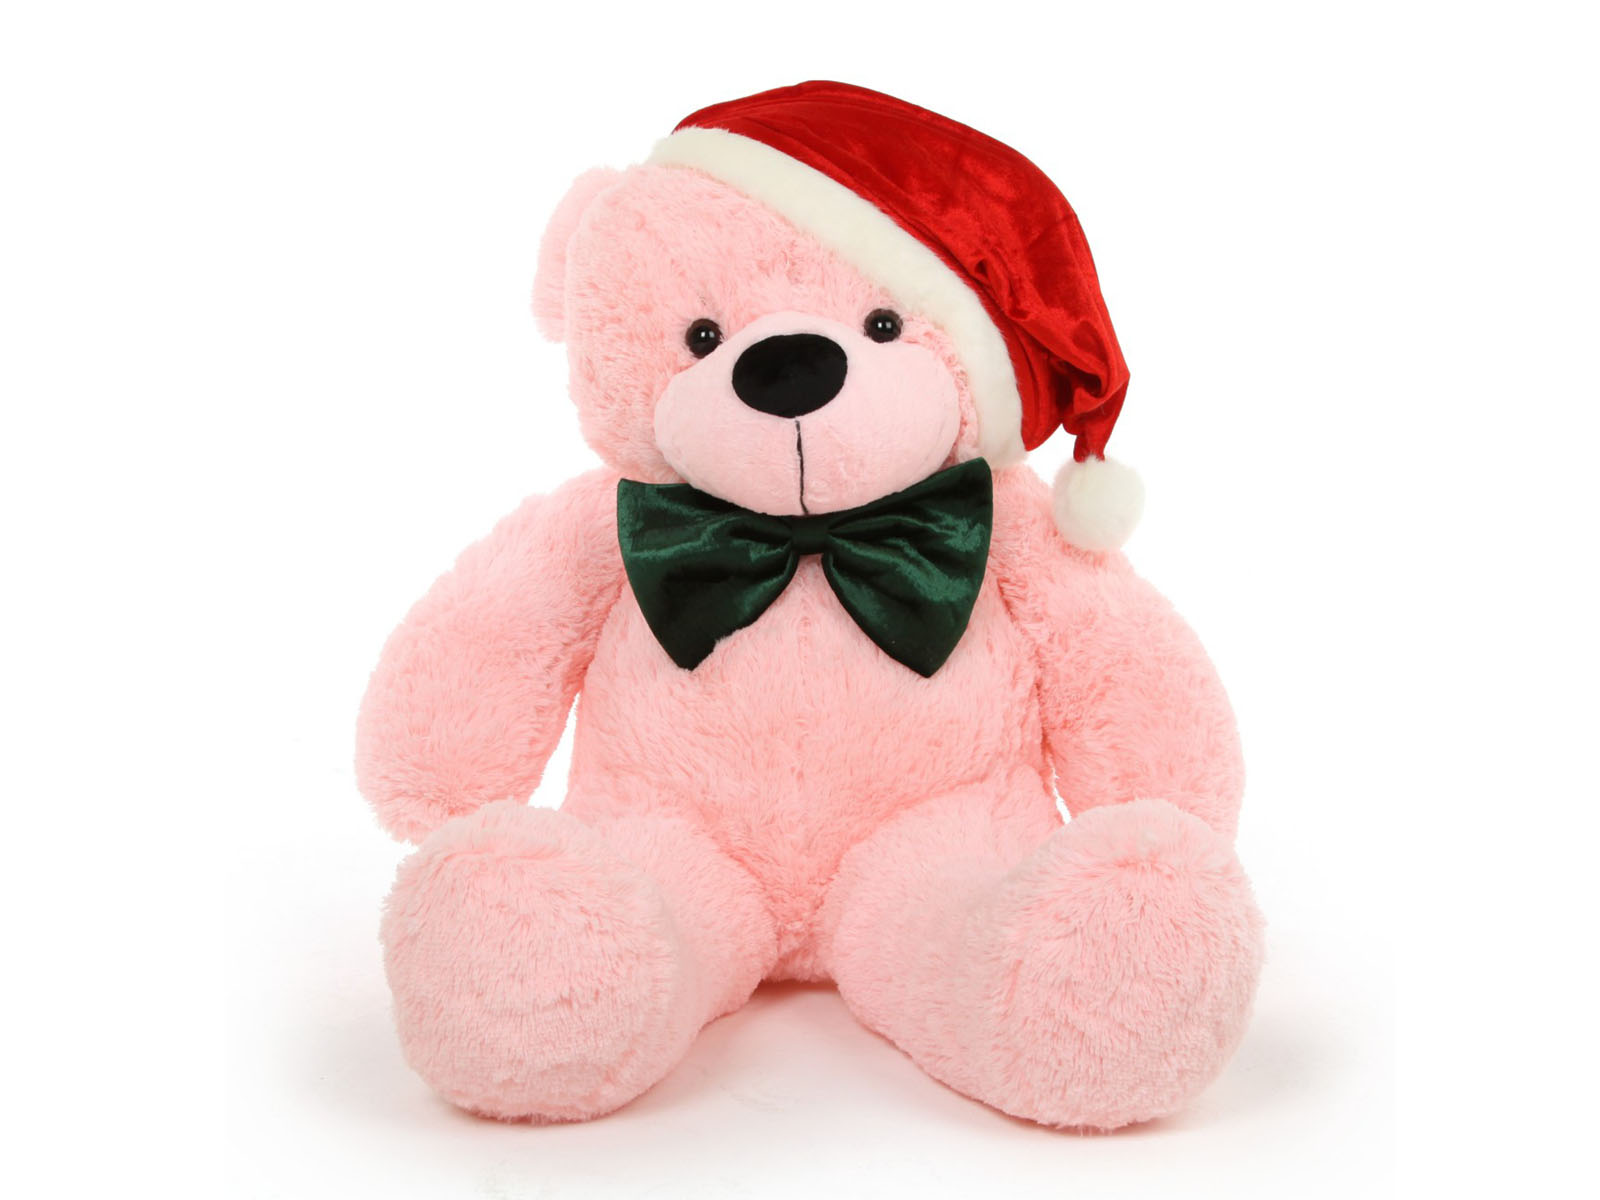 http://1.bp.blogspot.com/-ds9qPv27V_g/T3FuWRf00jI/AAAAAAAABZk/IFd2FYyAFJE/s1600/Christmas%20Teddy%20Bear%20Wallpapers%201.jpg